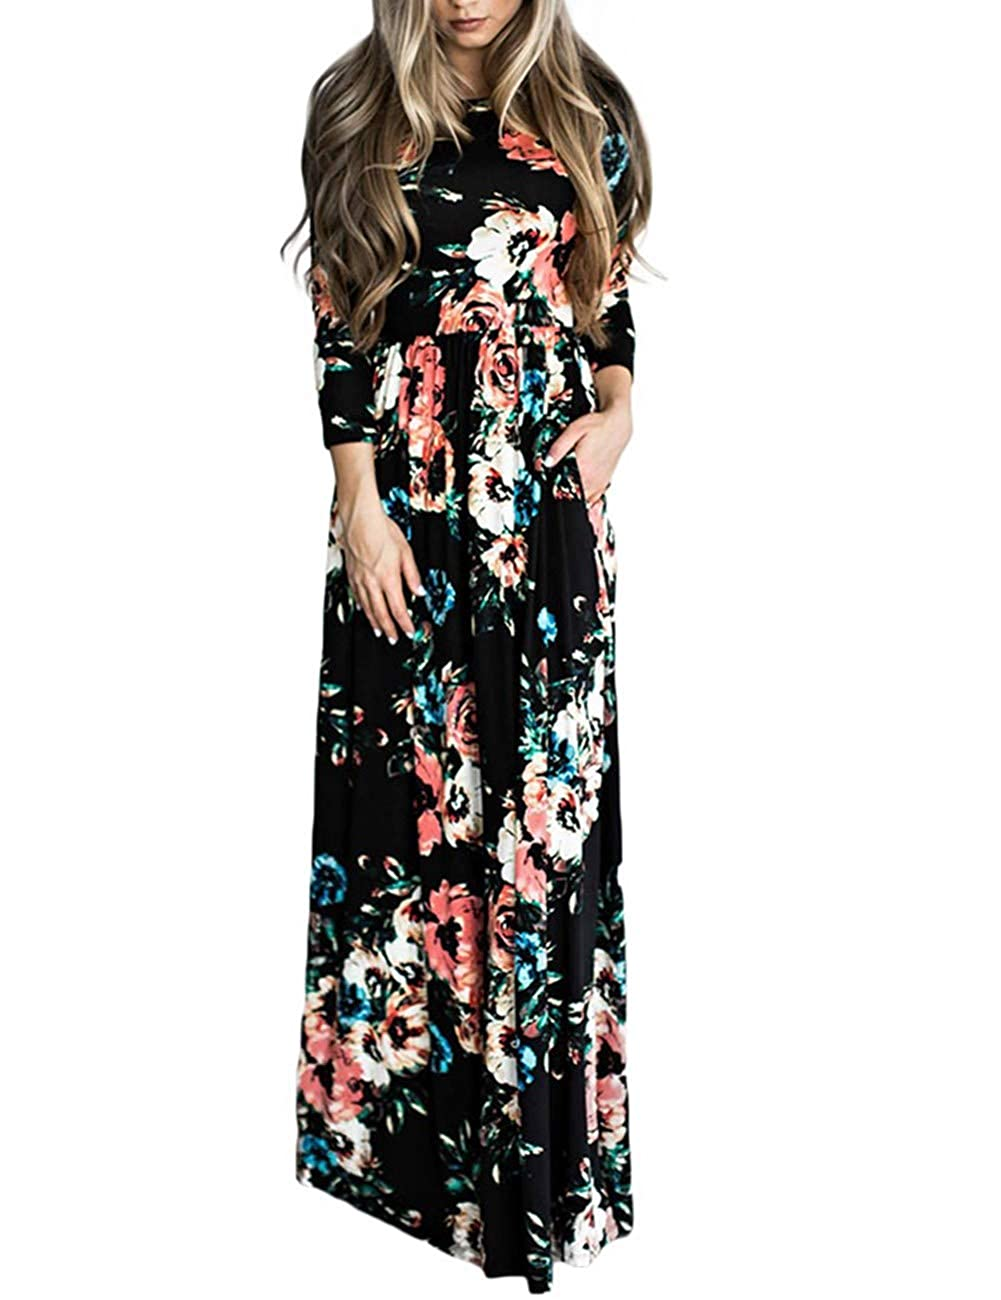 d19b0b33d1 YOUCOO Women Spring Floral Printed Dress Long Sleeve Maxi Dress with Pocket  at Amazon Women's Clothing store: